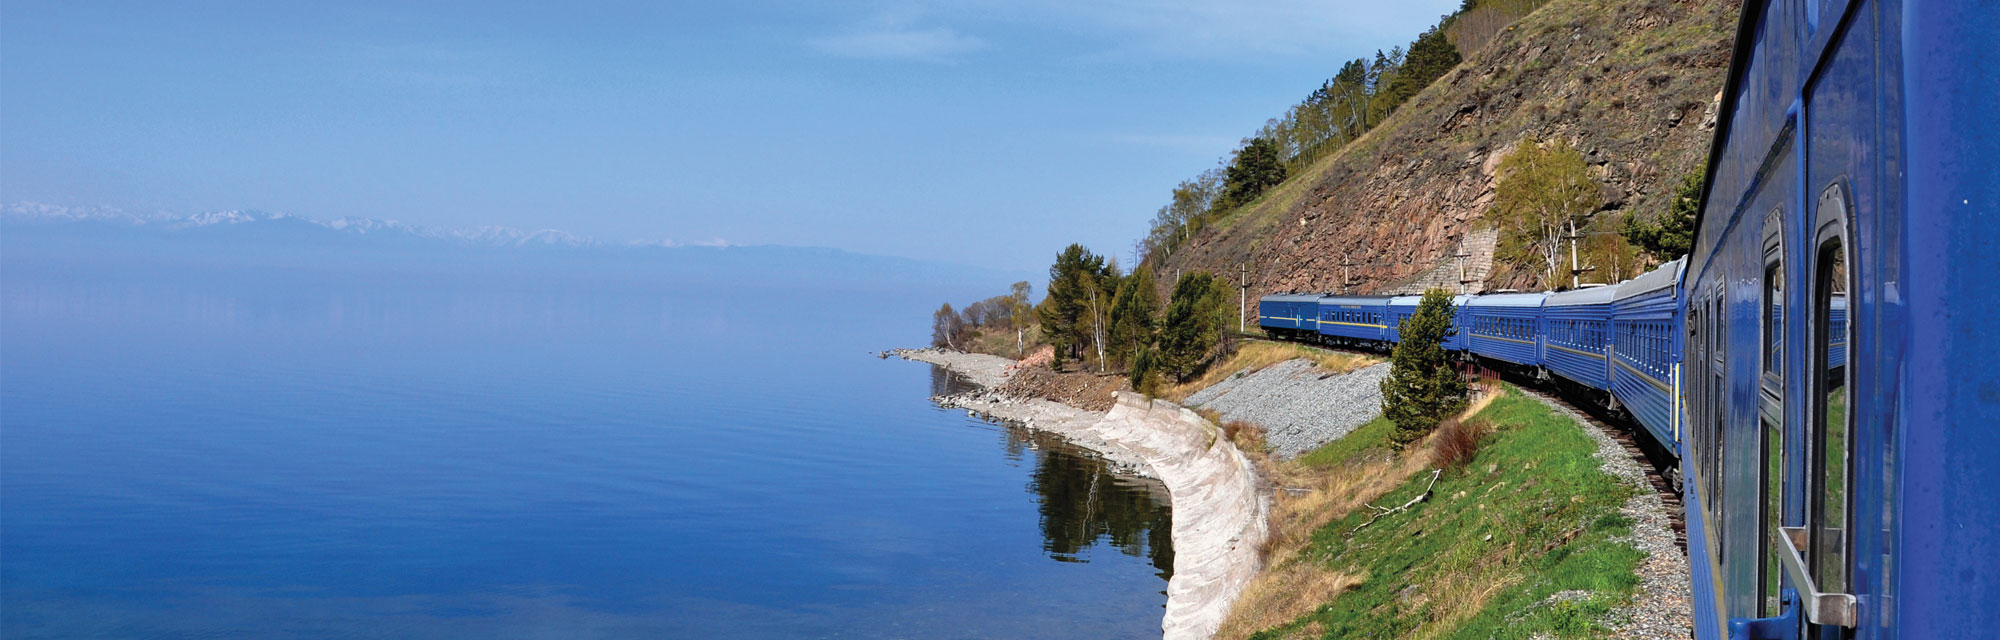 Luxury Train Travel | Voyages of a Lifetime by Private Train